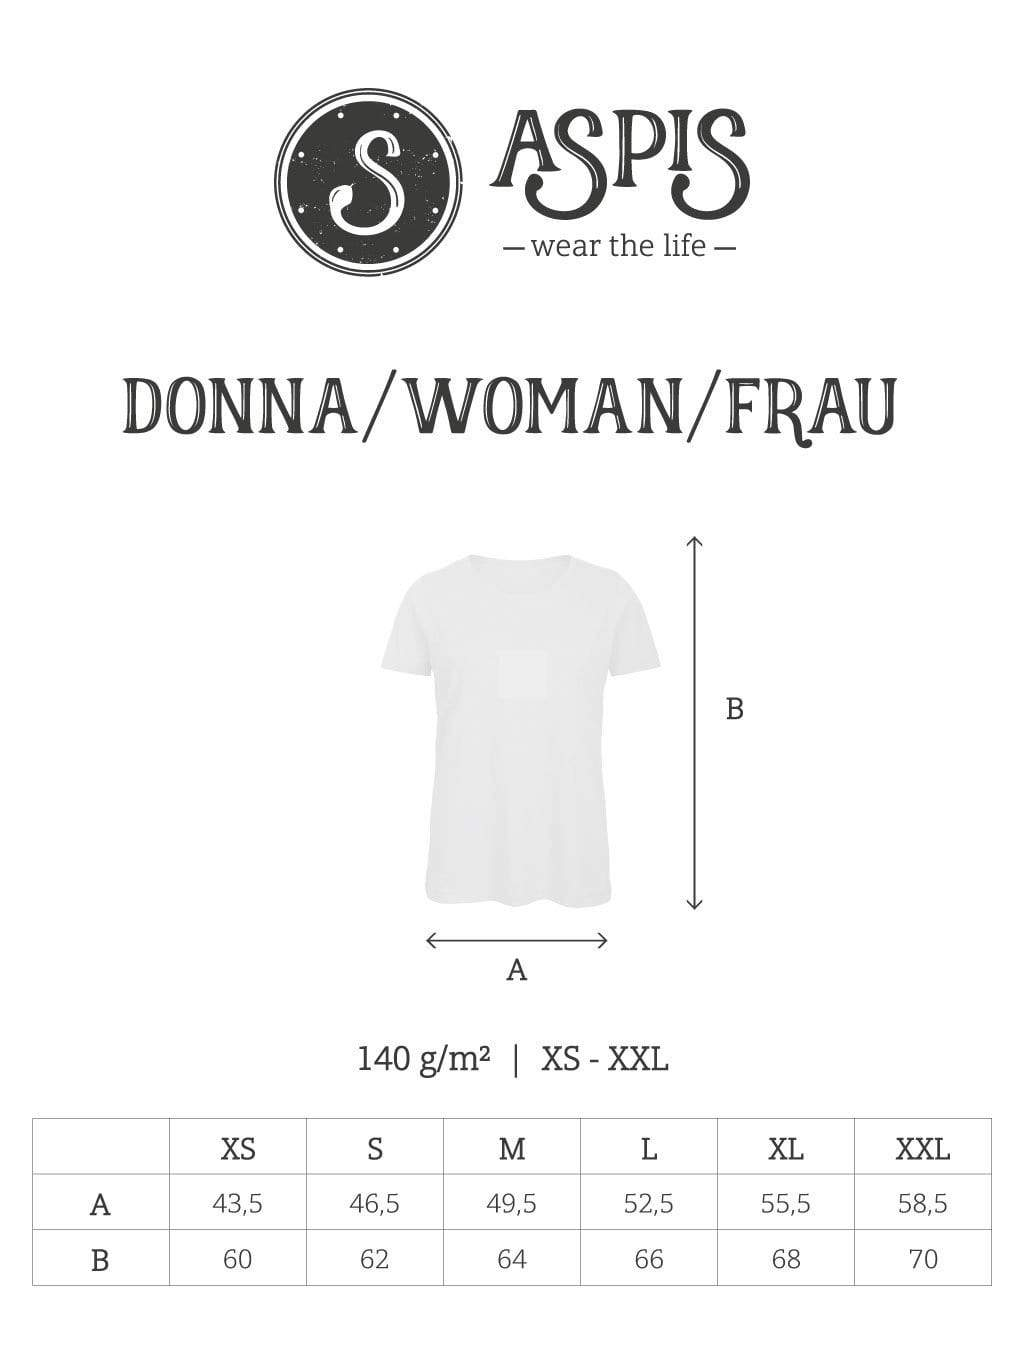 ASPISWEAR Tutti i Prodotti T-shirt KrakenShip Donna sustainable fashion ethical fashion